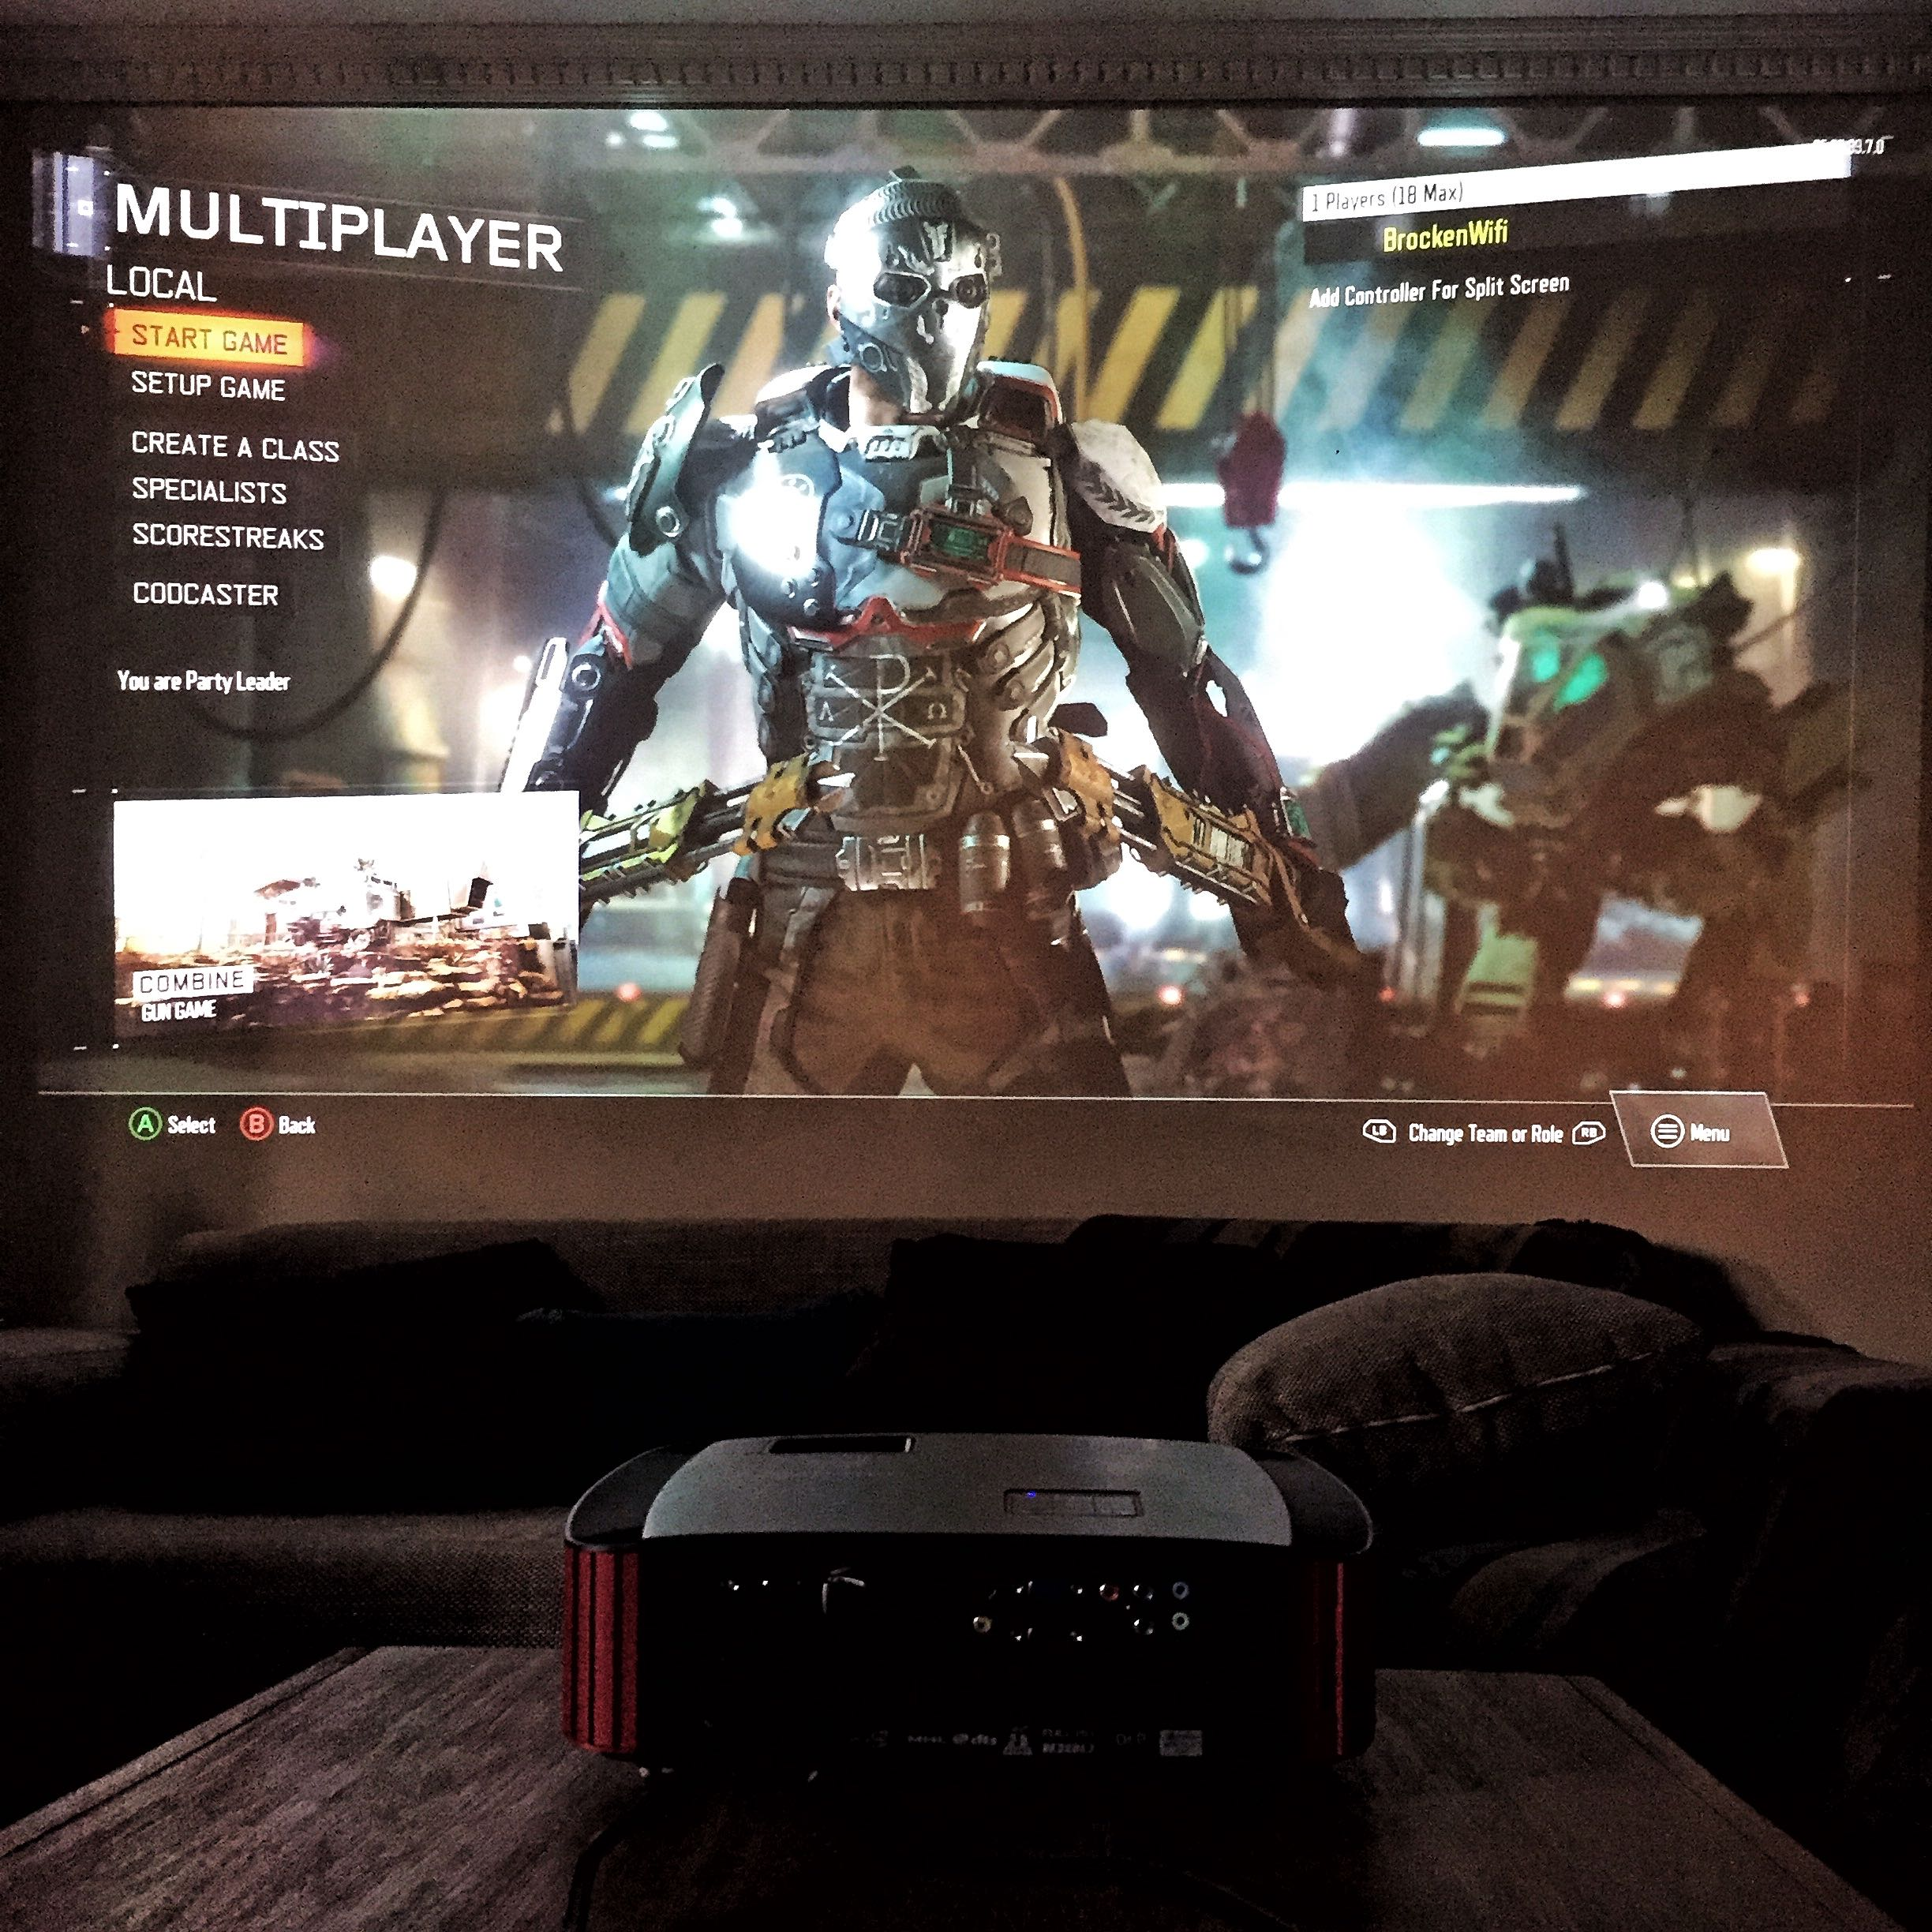 Get immersed in your gaming with the Predator Z650 Gaming Projector